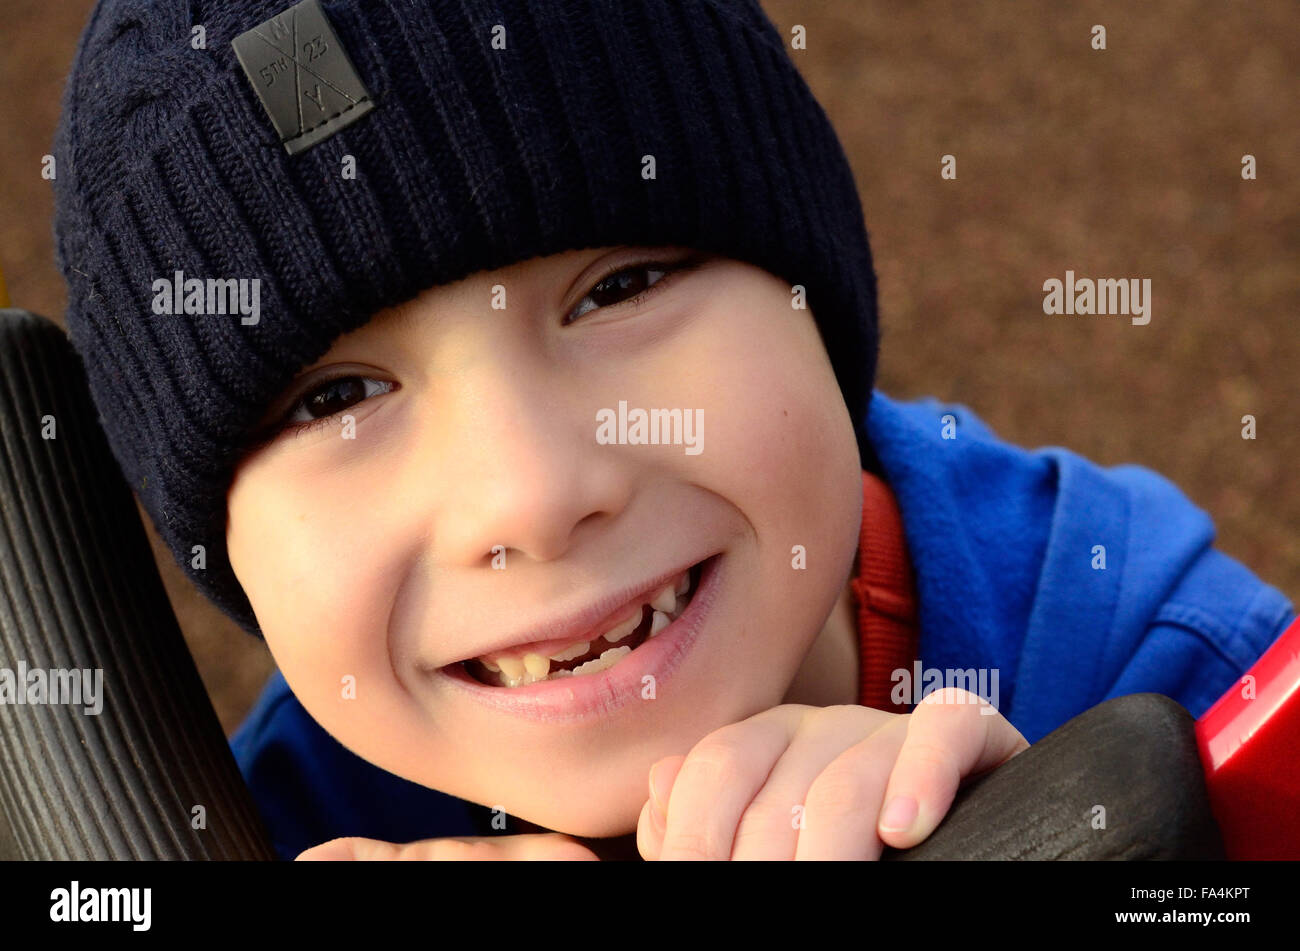 a-young-boy-with-a-gappy-smile-wearing-a-beanie-hat-FA4KPT.jpg